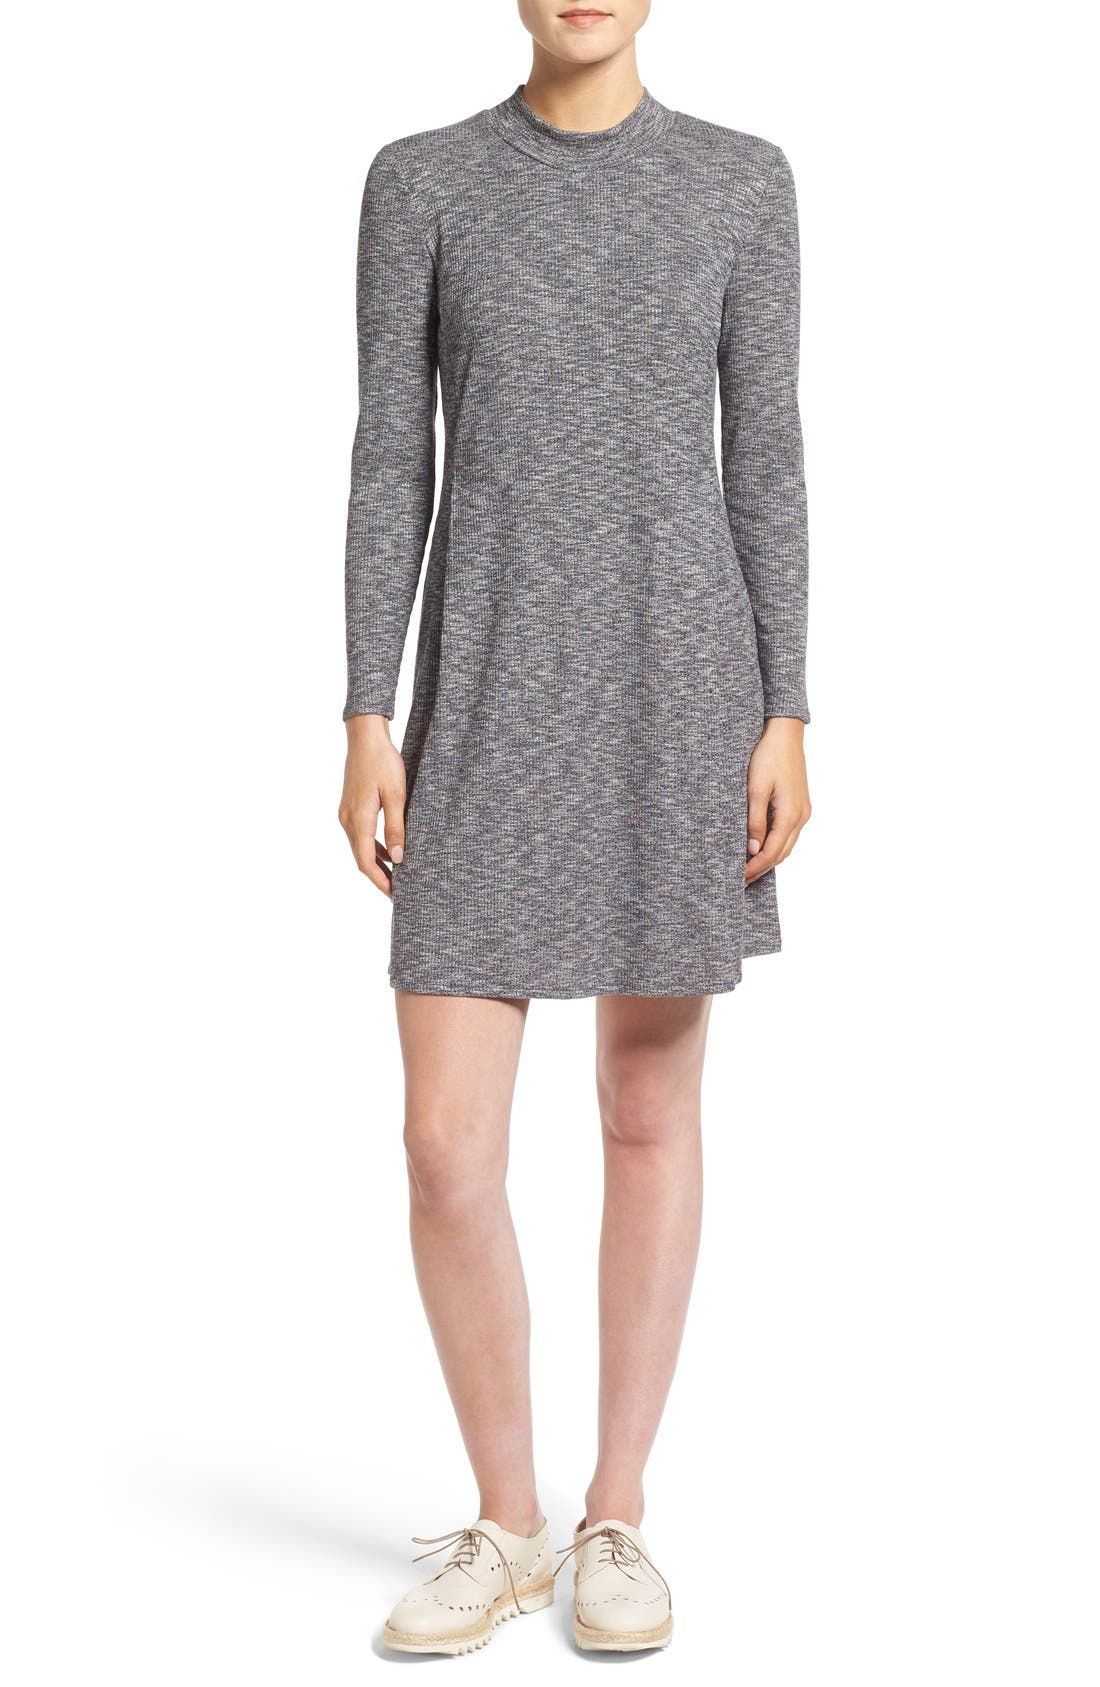 Mock Neck Marled Knit Dress,                             Main thumbnail 1, color,                             Heather Gravel